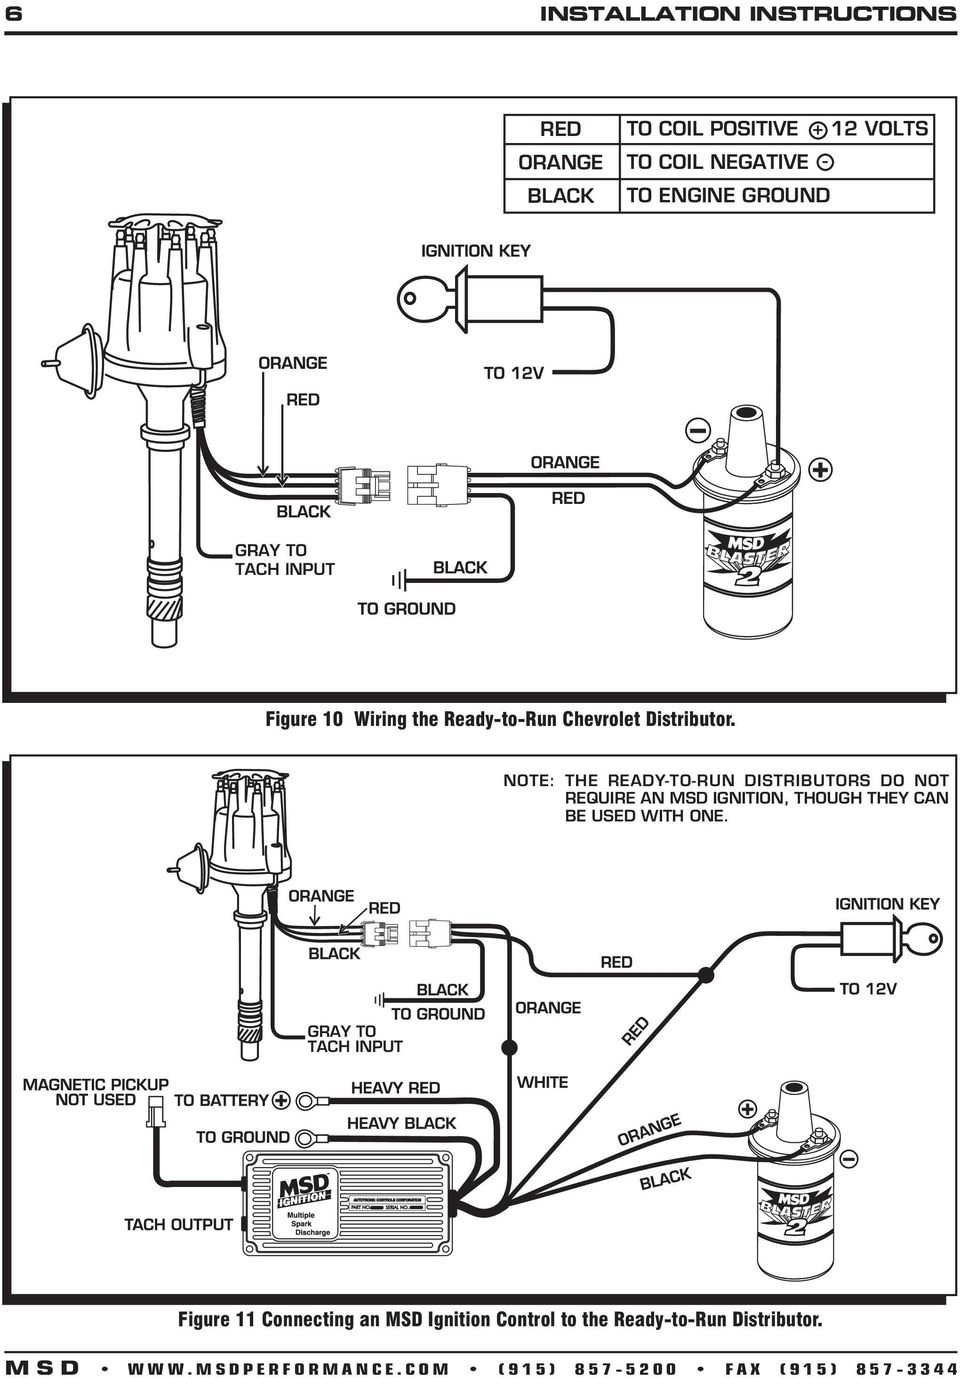 5400 Msd Distributor Wiring Diagram Electrical Diagrams 2wire 6al Connected To Pro Billet Ready Run Chevrolet V8 Pn 8360